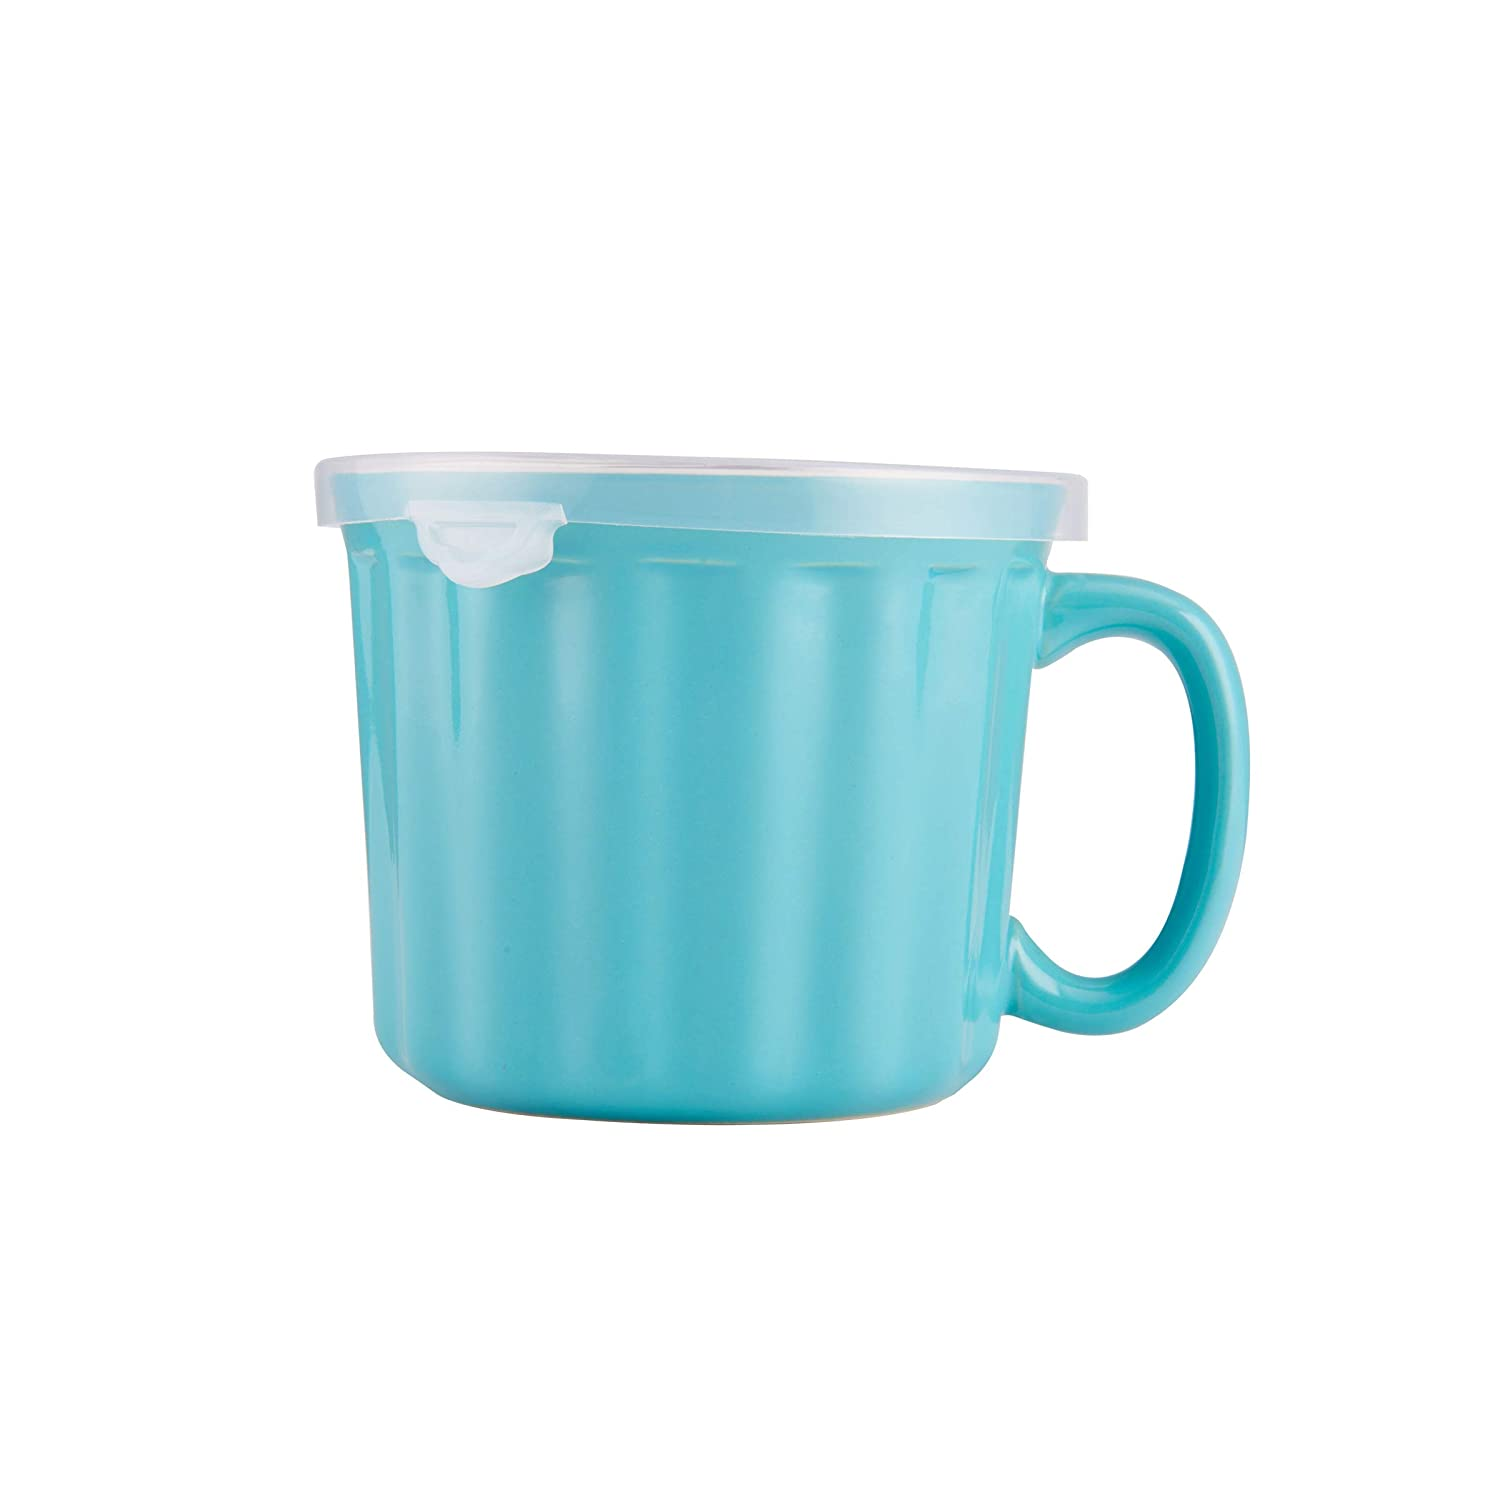 Farberware 5172594 Baker's Advantage Ceramic Soup Mug with Lid 16-Ounce Teal